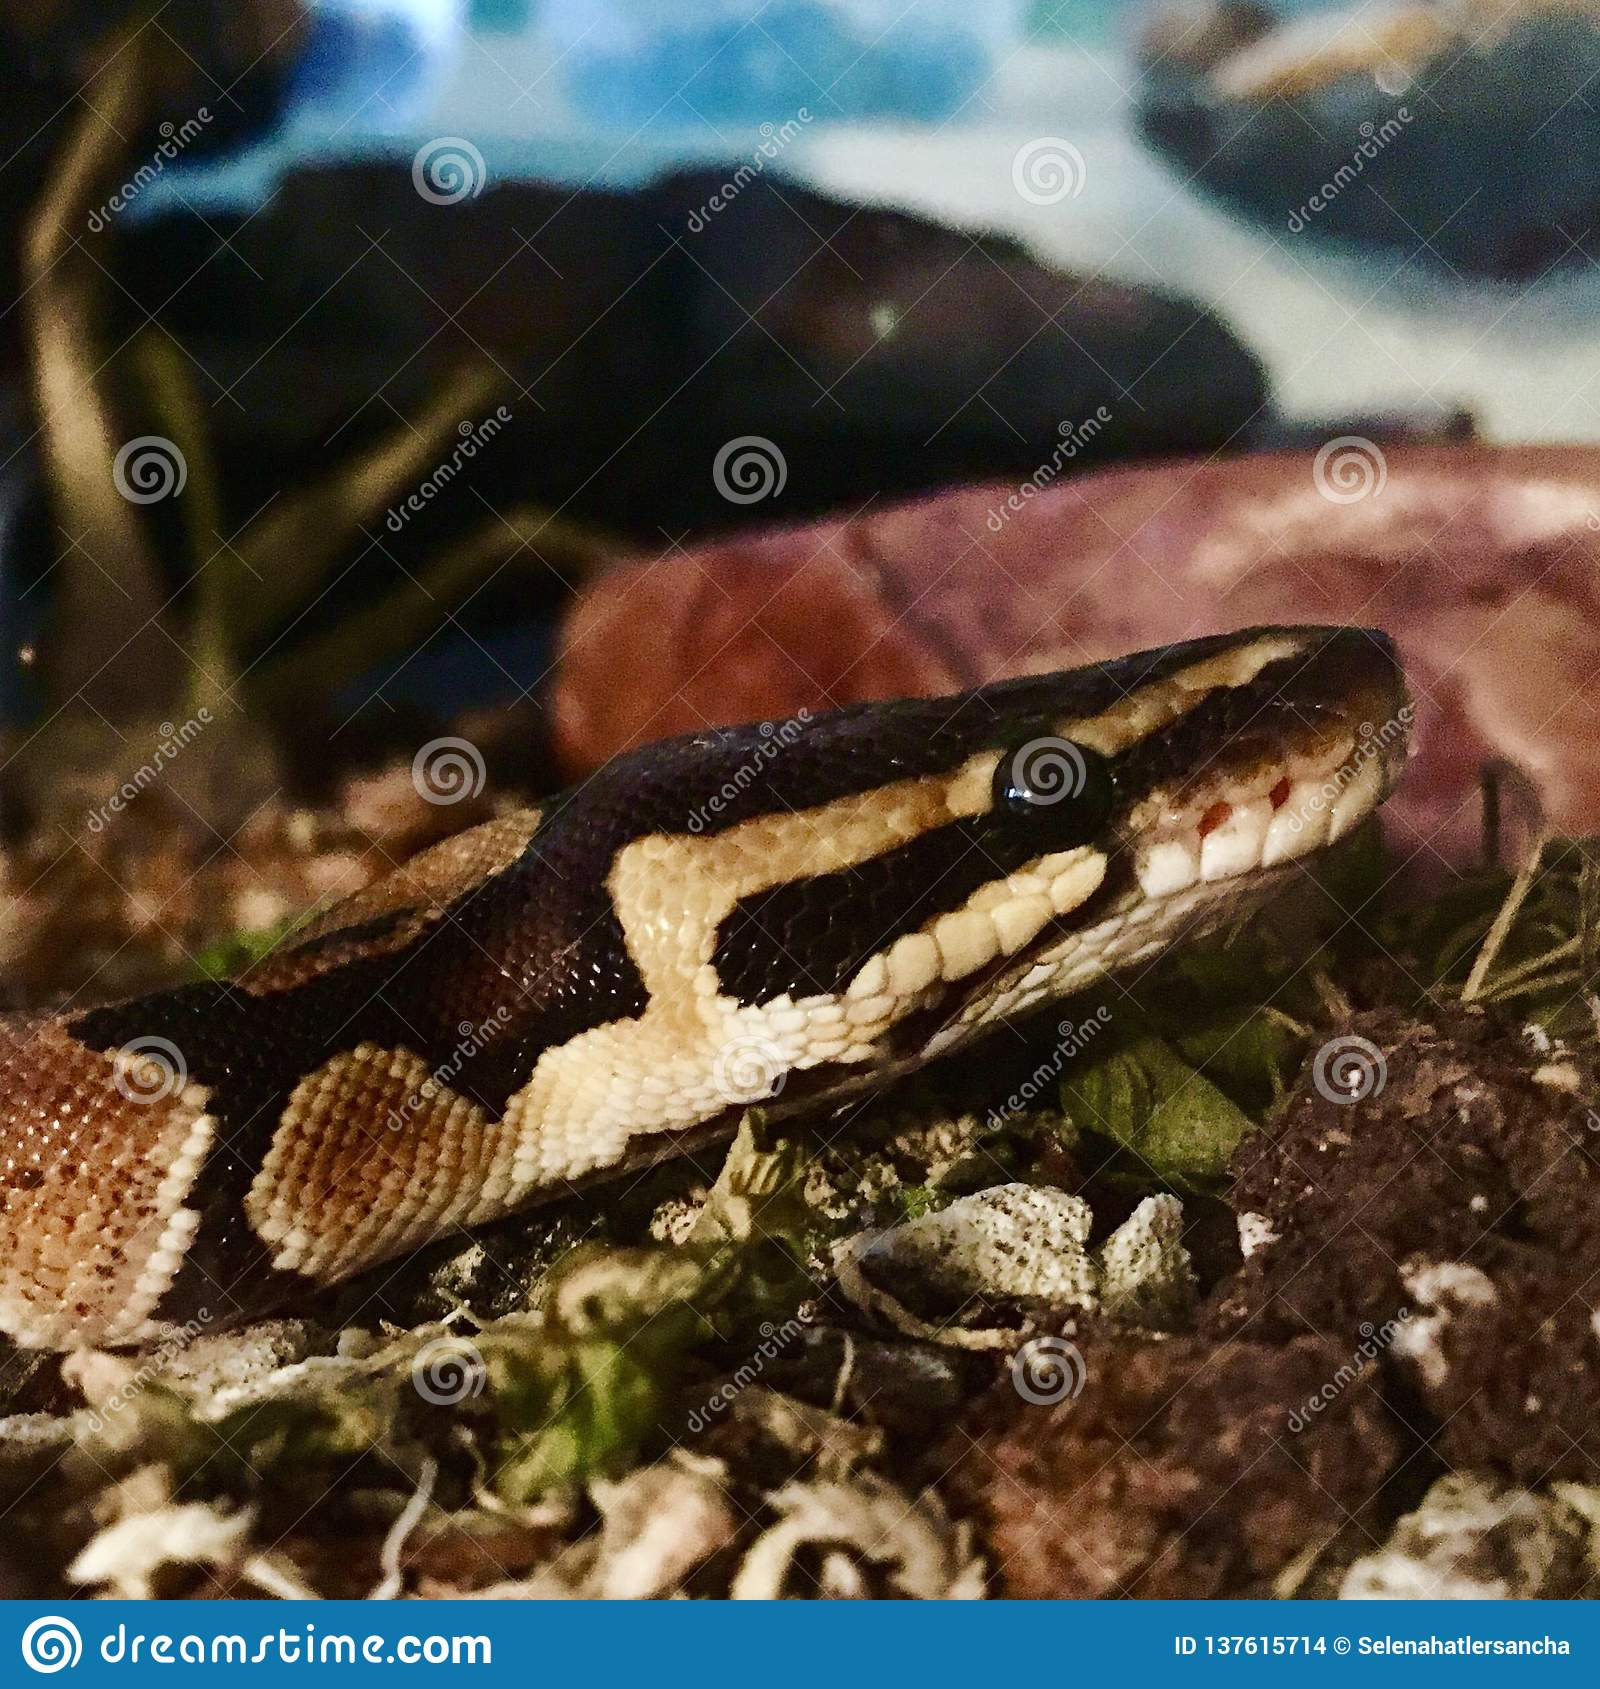 Cute Pet Snake On Dirt Stock Photo Image Of Splotches 137615714